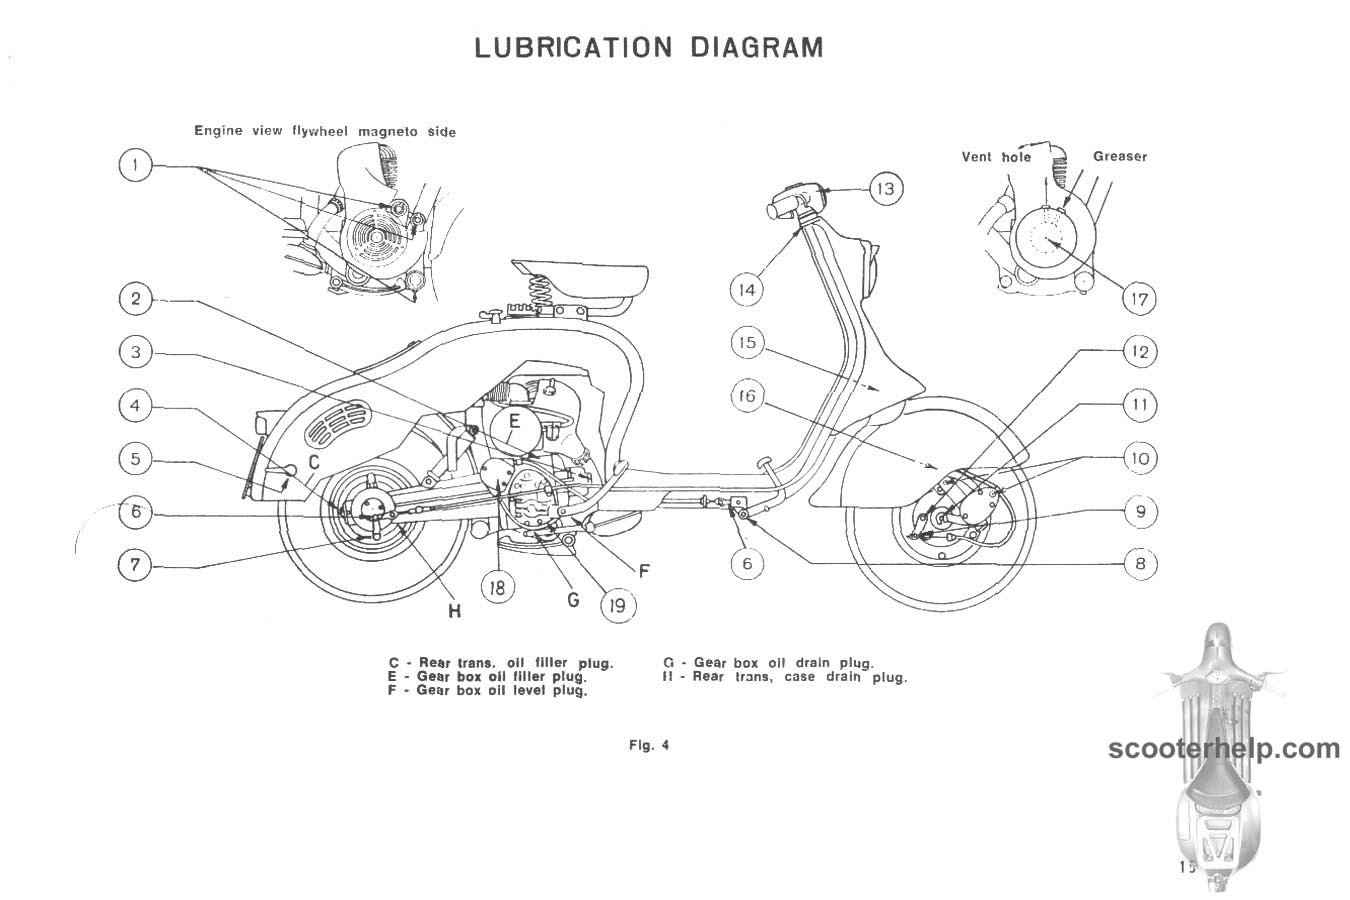 150 Ld Factory Repair Manual Lambretta Wiring Diagram Click Individual Pages For Images Or Here A 7mb Pdf File